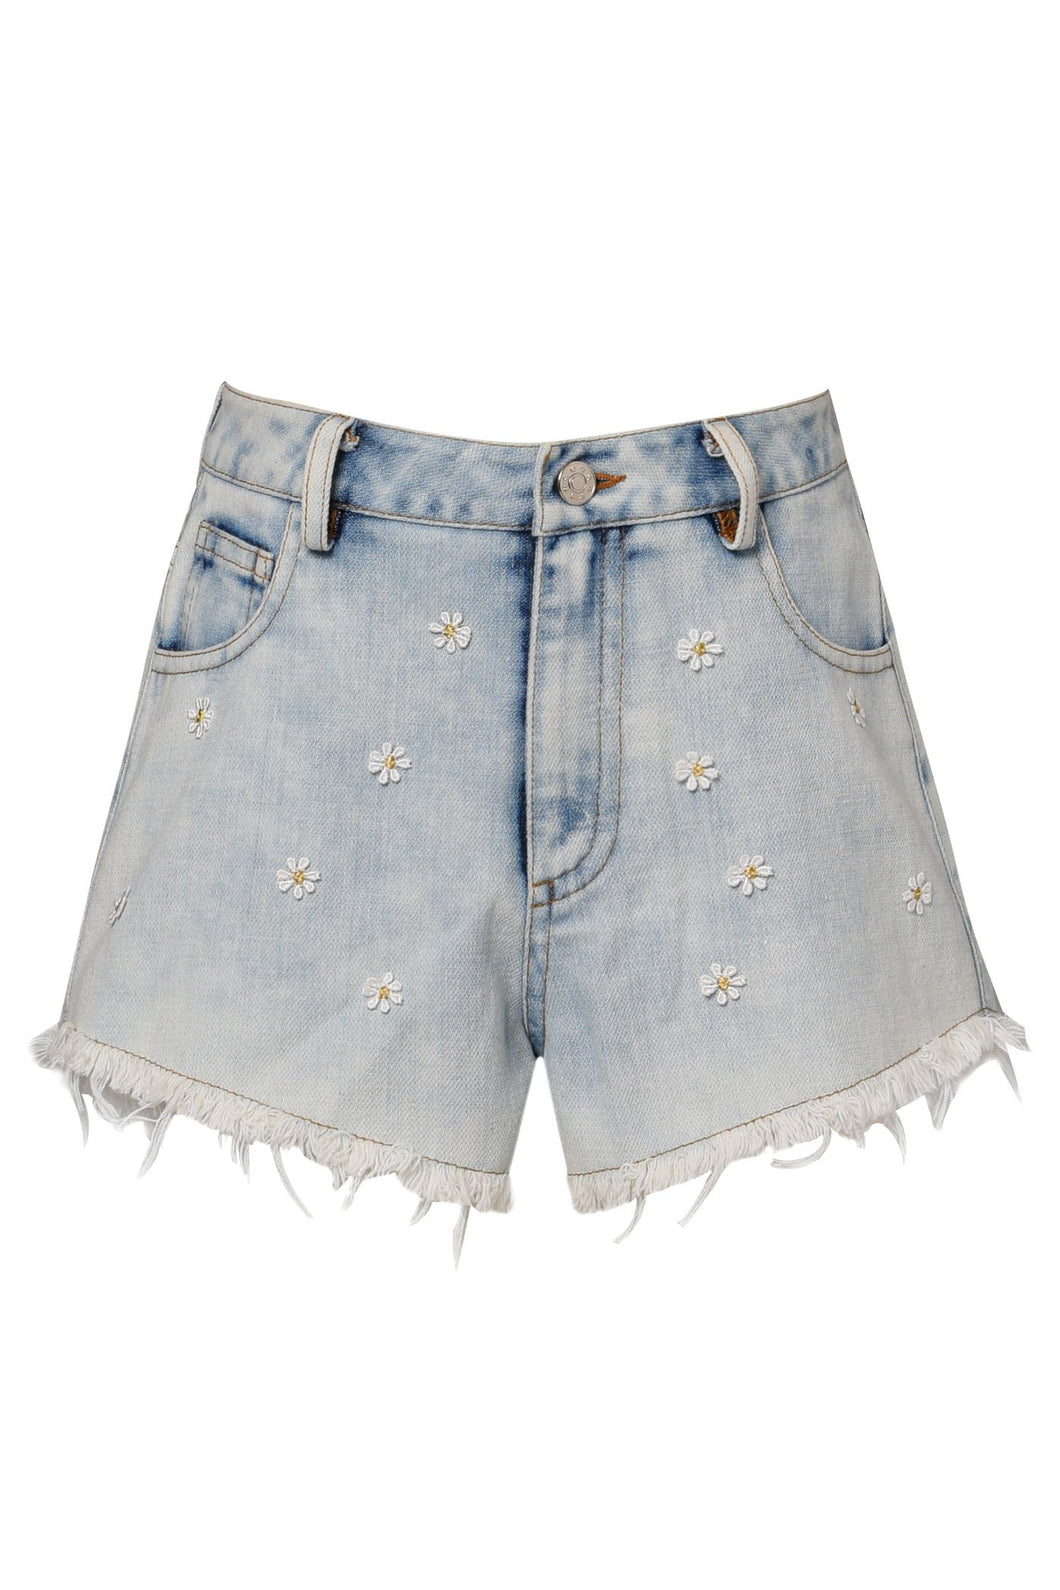 Hannah Banana Daisy Vintage Wash Denim Shorts